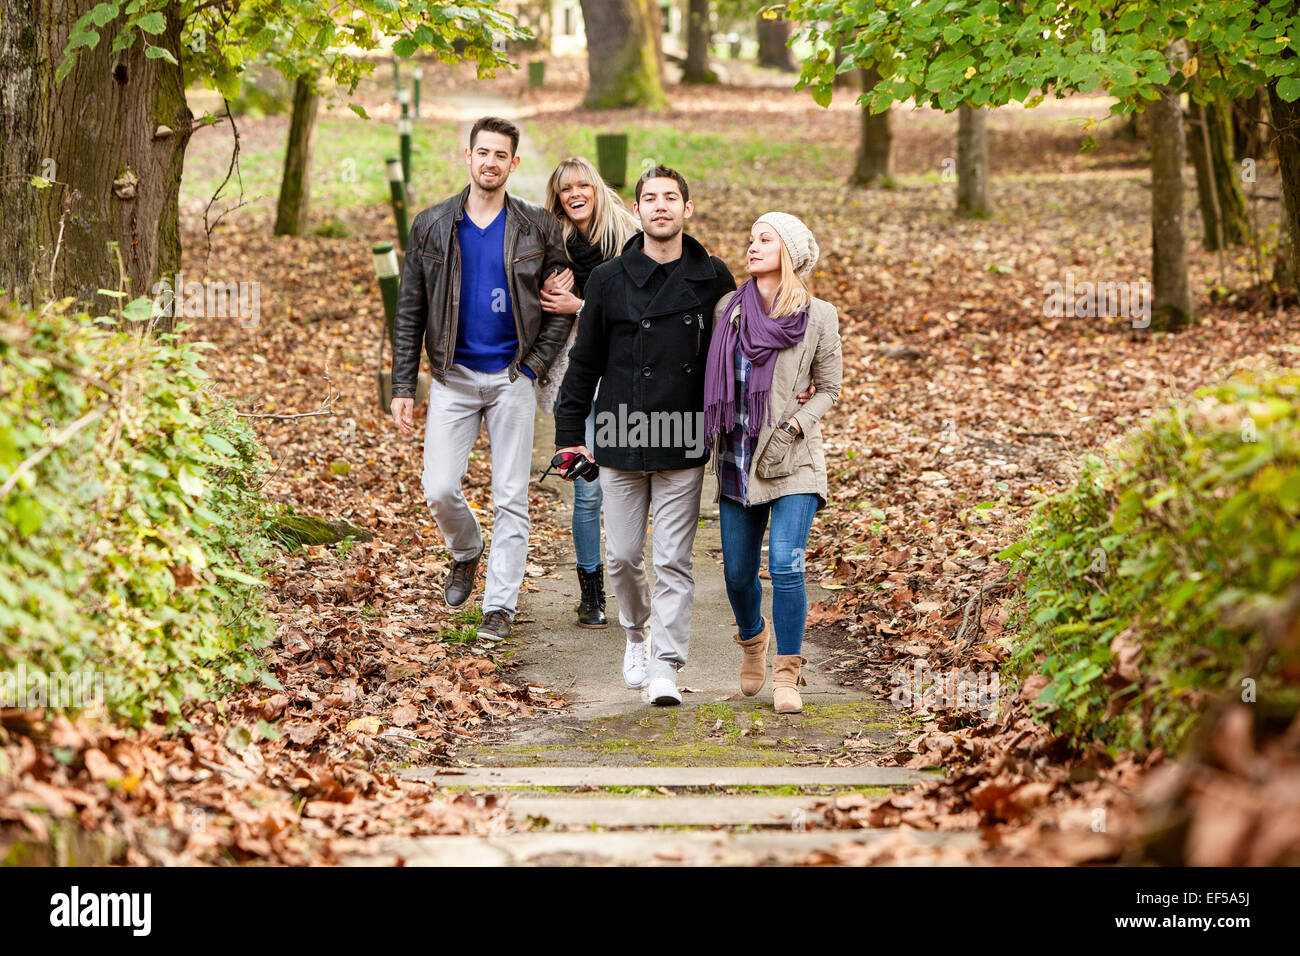 Group of friends walking through autumn park - Stock Image